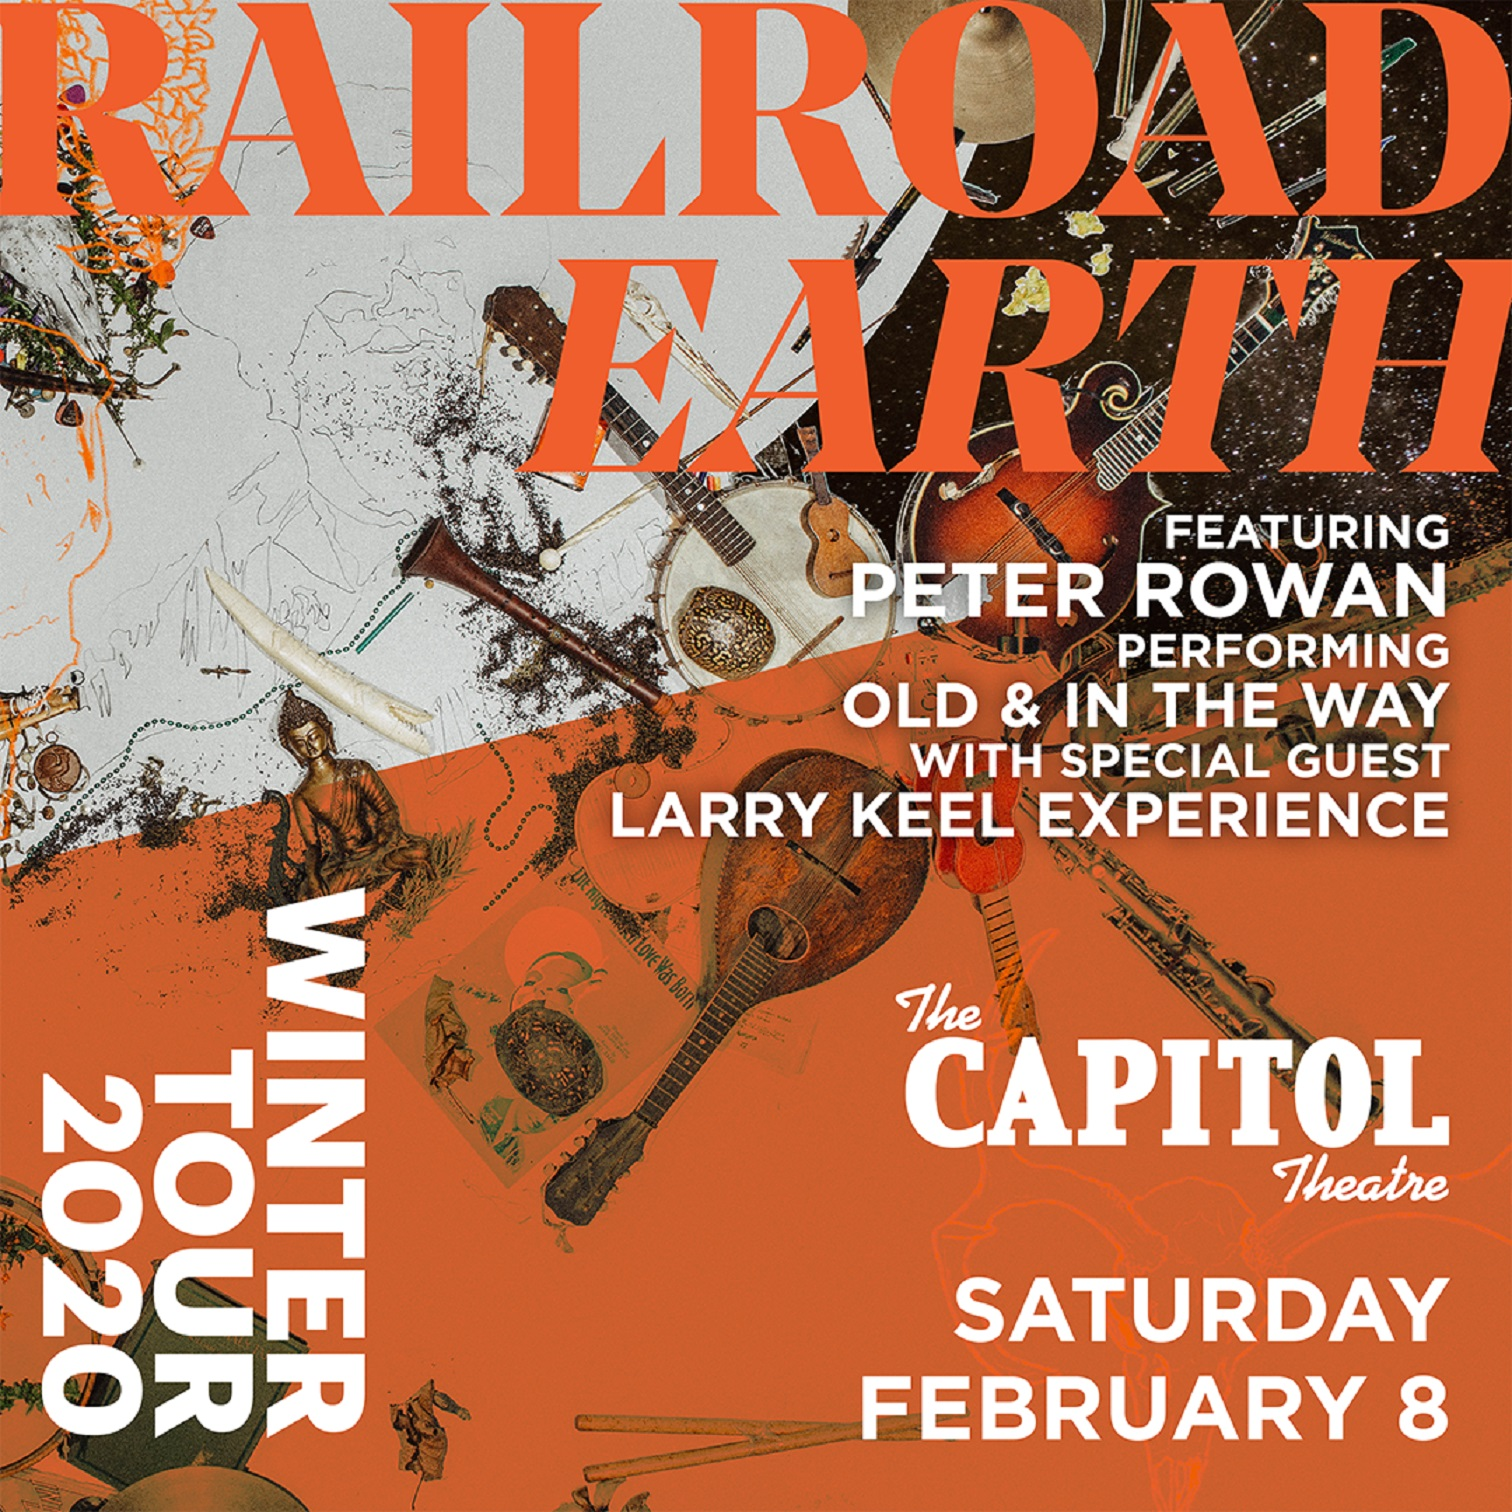 Railroad Earth @ The Capitol Theatre featuring Peter Rowan performing Old & In the Way